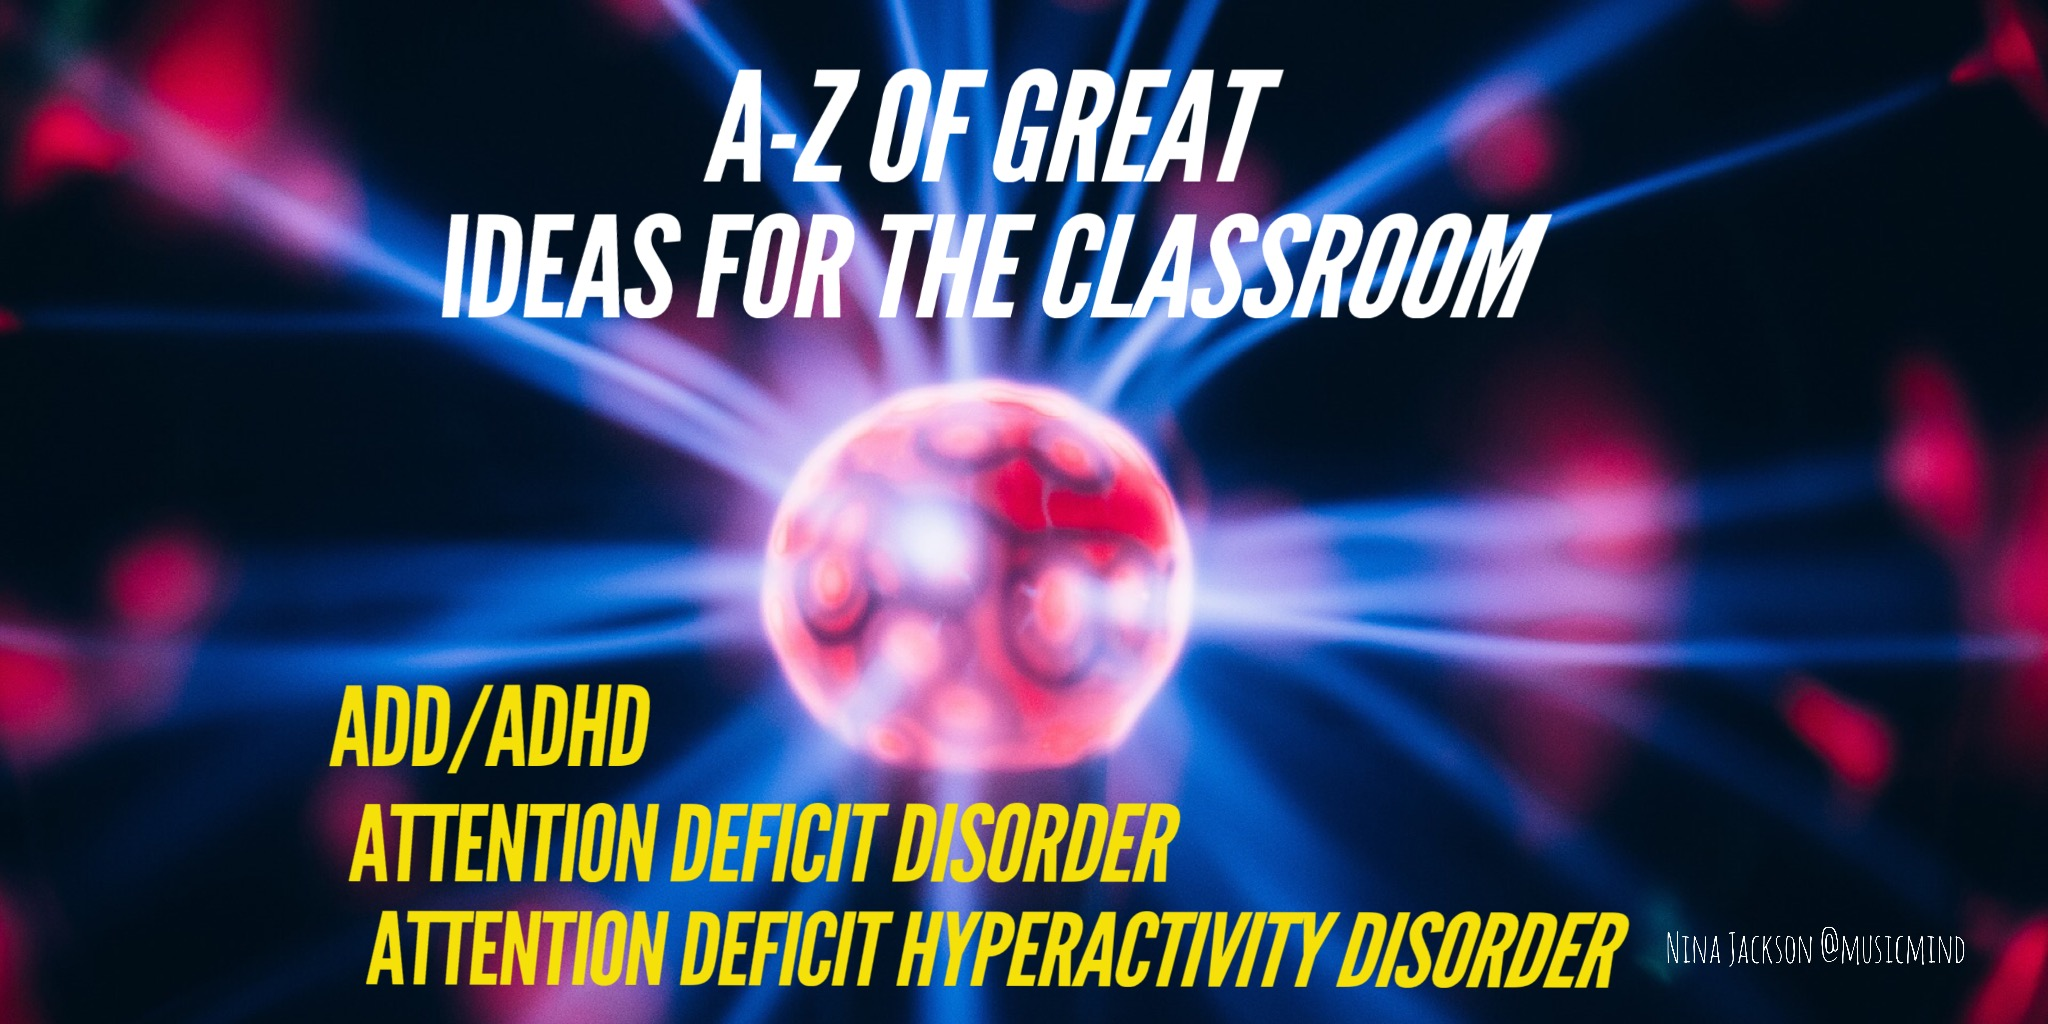 A-Z of great ideas for the classroom – ADD/ADHD